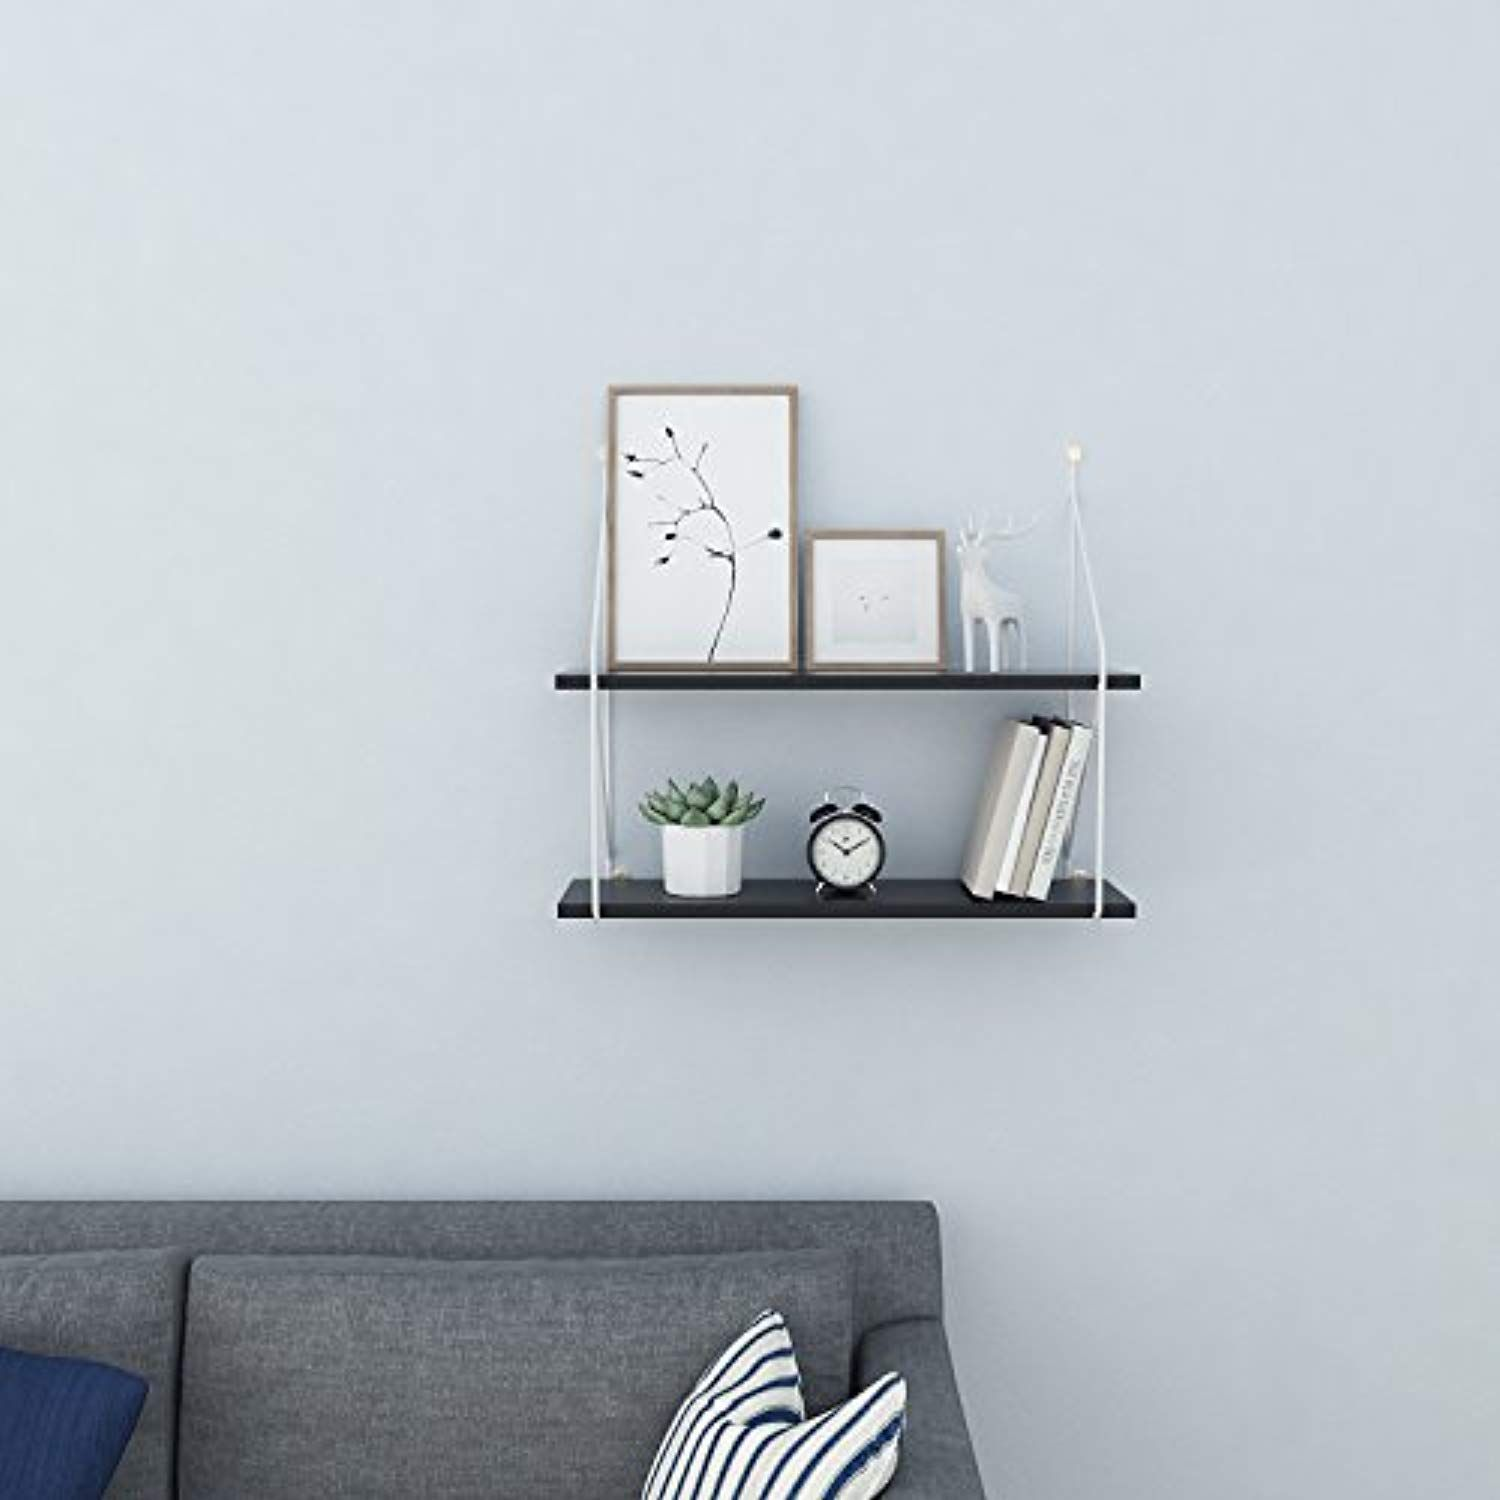 Homevol Industrial Floating Shelves Wall Mounted Metal Frame Urban Chic Display Wall Shelf 2 Tier Black Floating Shelves Shelves Industrial Floating Shelves